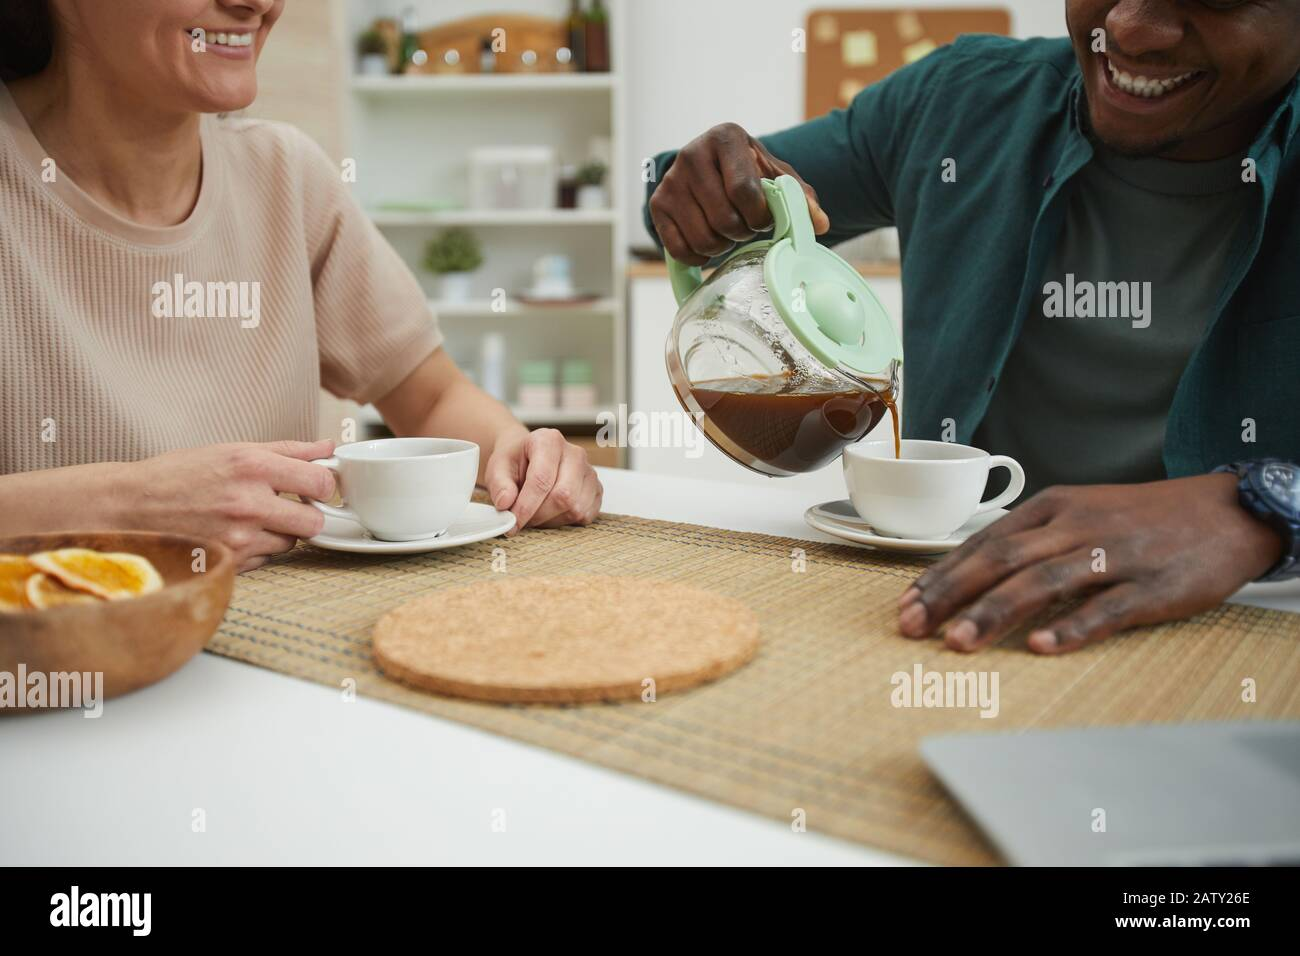 Close-up of young multiethnic couple enjoying each other and drinking coffee at the table in the domestic kitchen Stock Photo